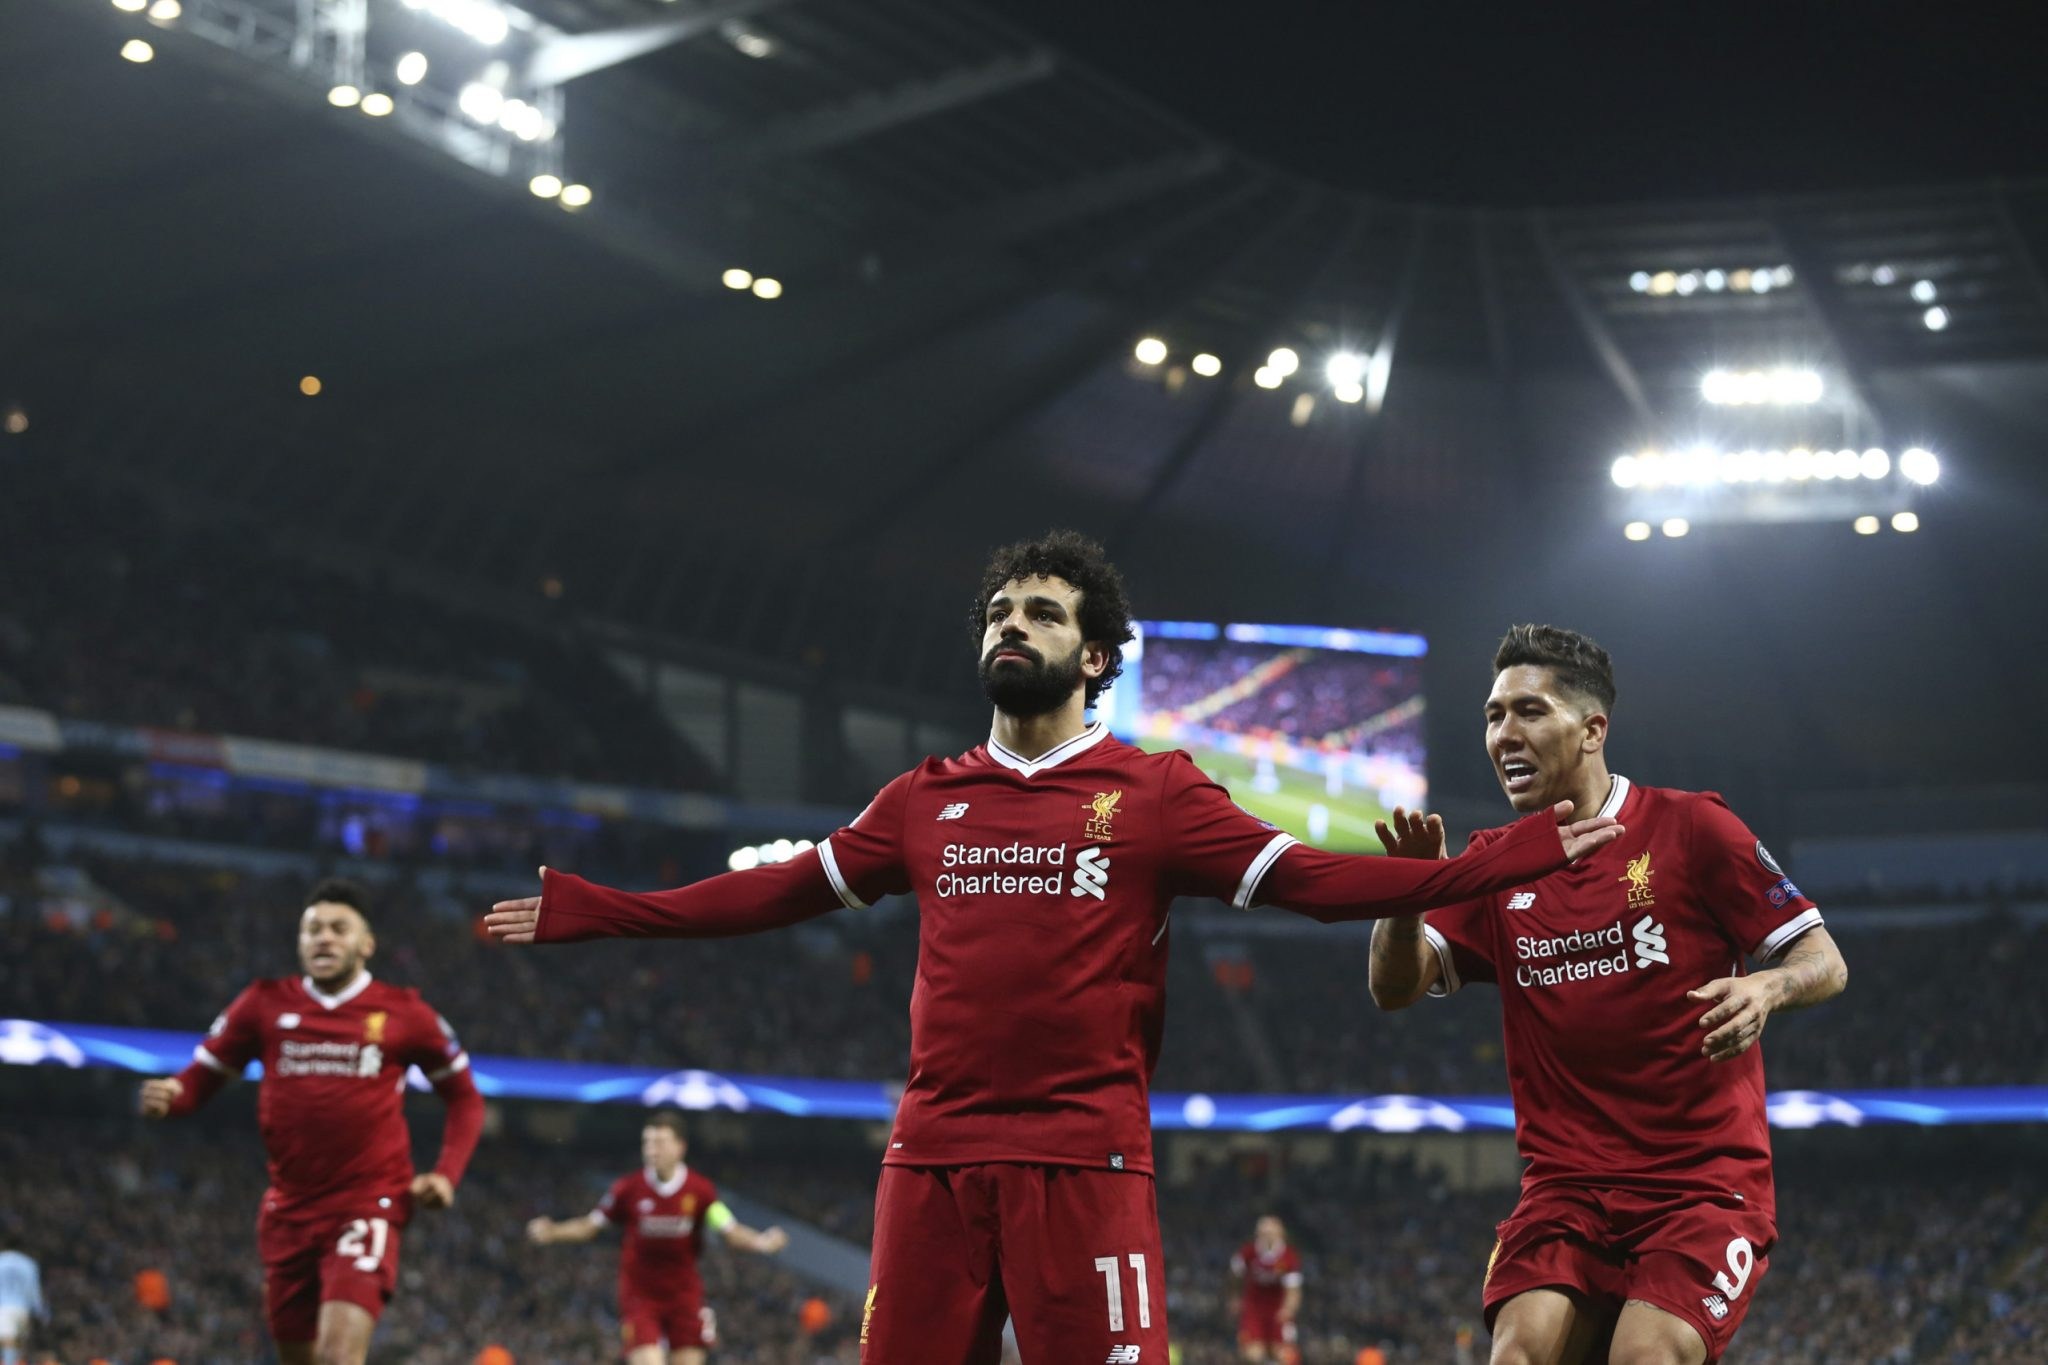 Virgin Media and TV3 secure Champions League and Europa League rights